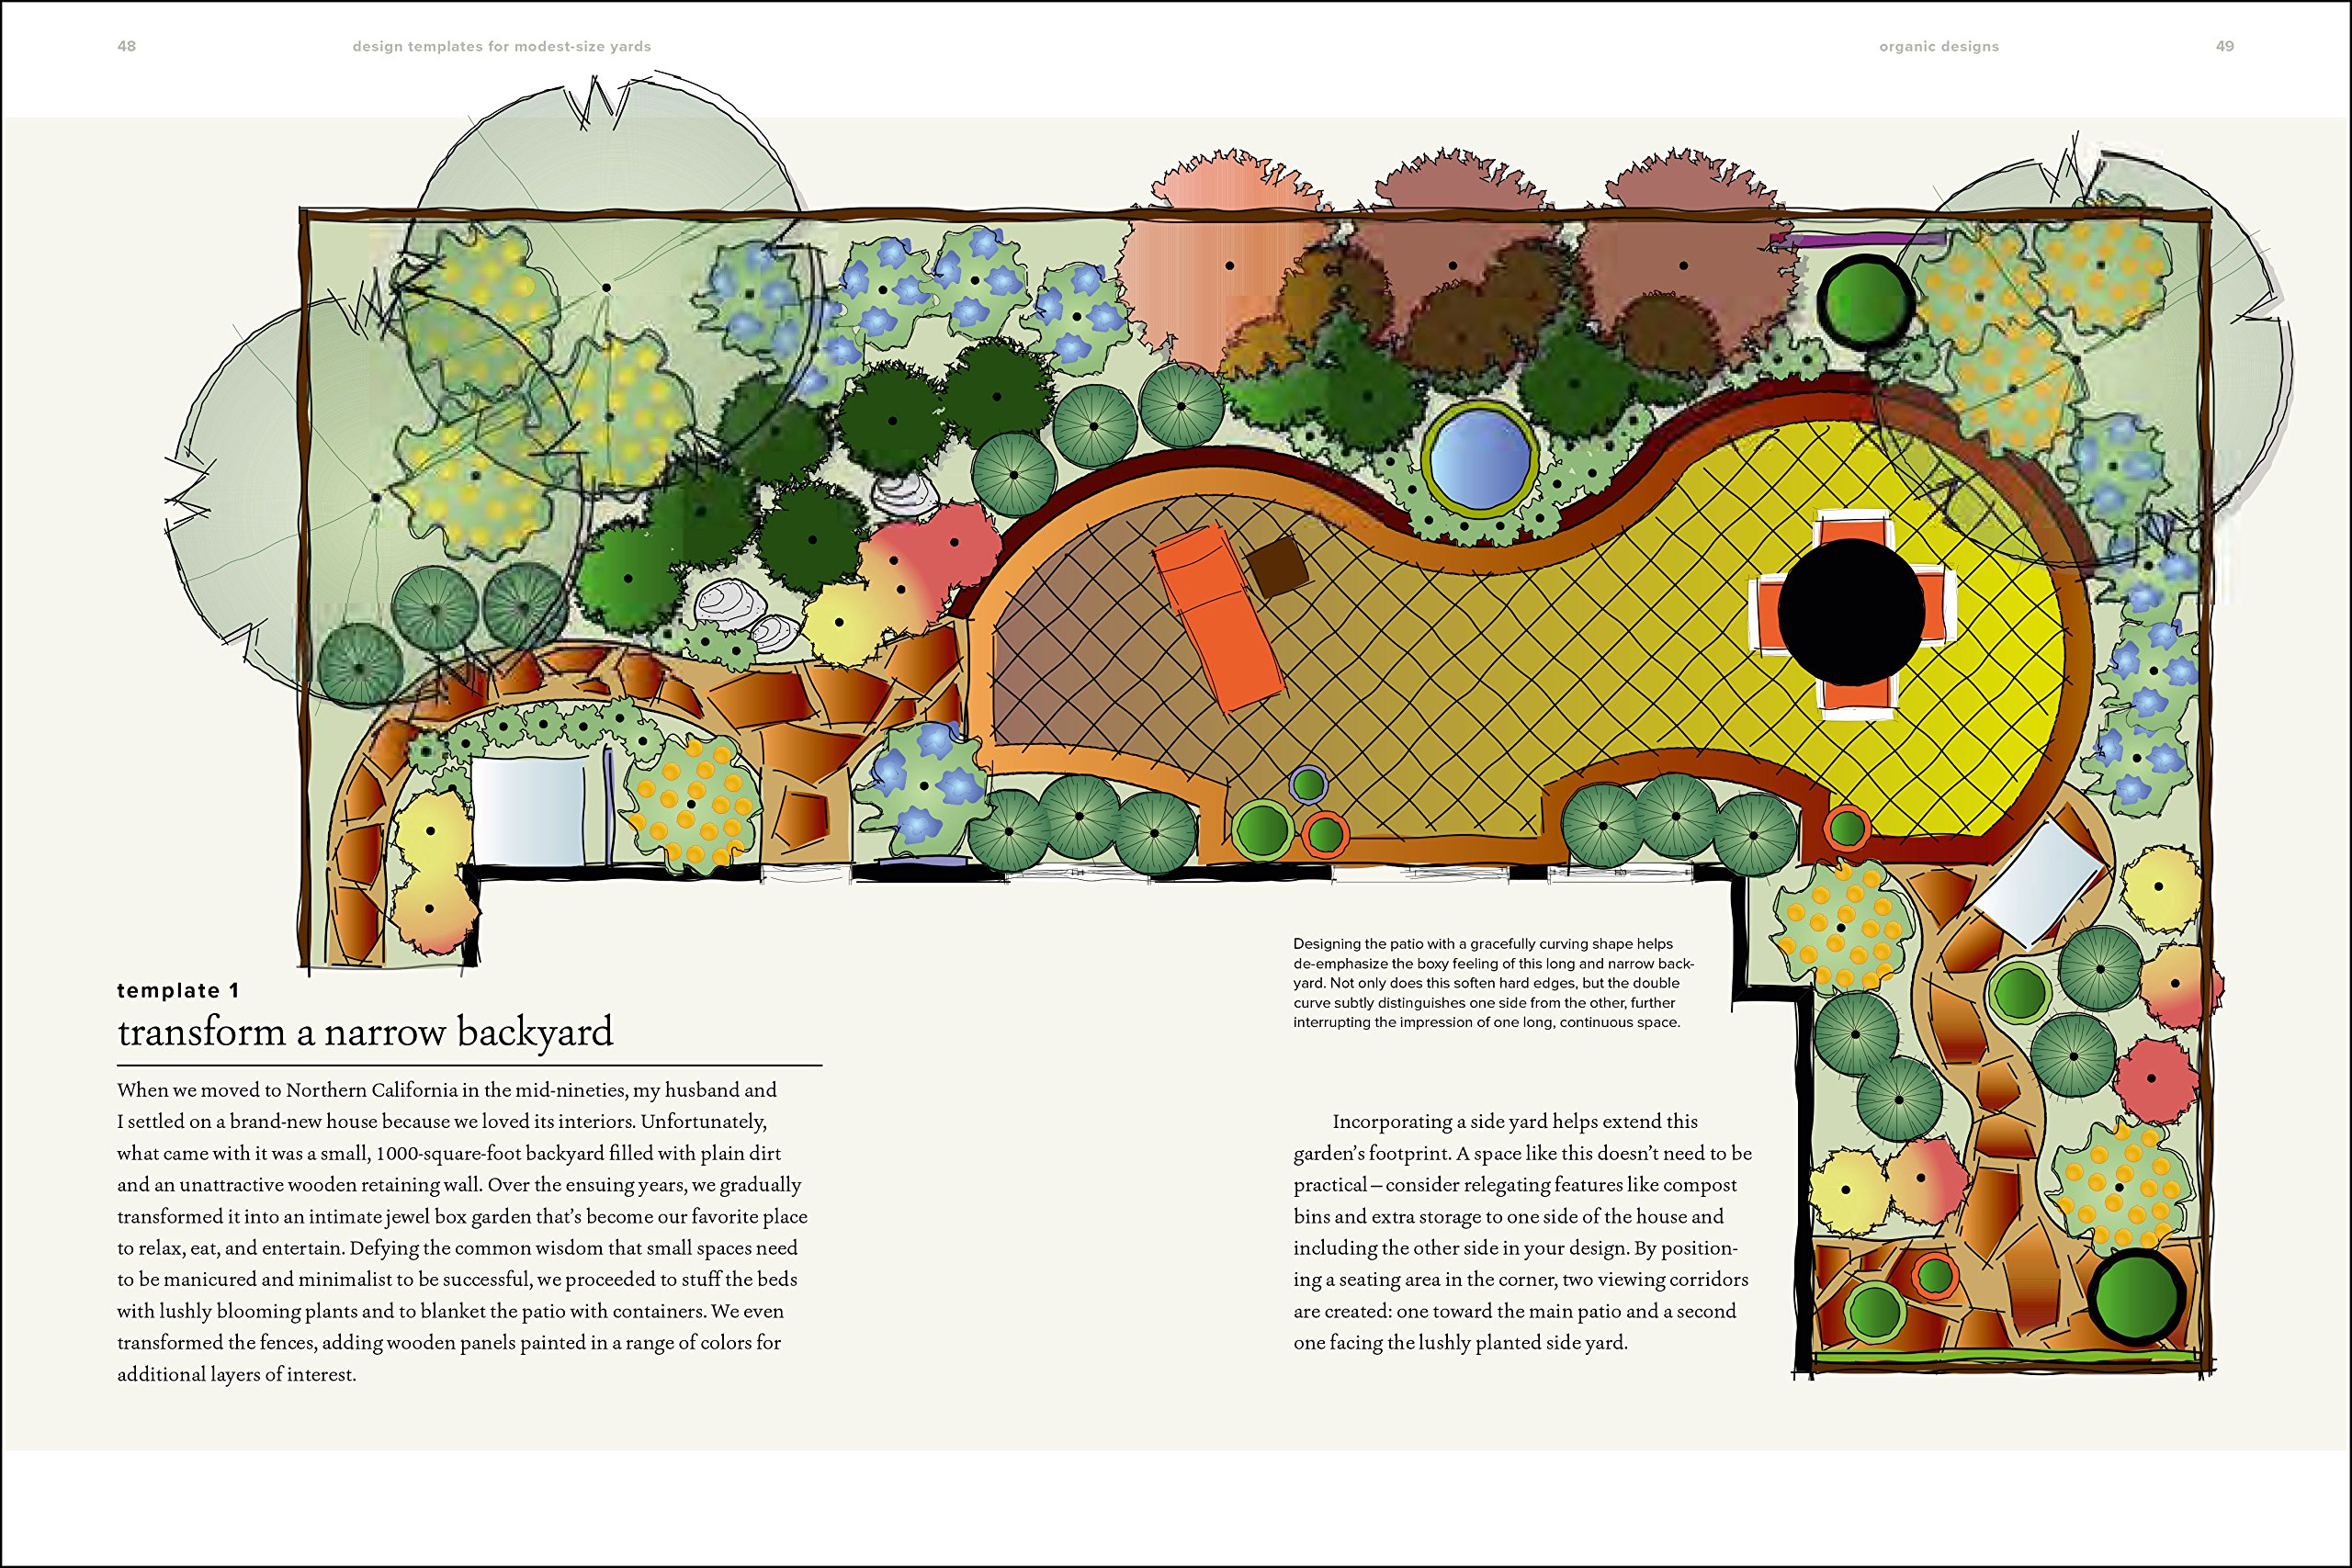 The Less Is More Garden: Big Ideas for Designing Your Small ... Narrow Back Garden Designs on narrow perennial garden, cold garden design, narrow garden arbor, clean garden design, narrow backyard garden, small garden design, purple garden design, traditional garden design, cheap garden design, narrow garden pathways, narrow garden landscaping, narrow garden plan, narrow japanese gardens, average garden design, white garden design, narrow herb garden, narrow garden bed, peach blue garden design, happy garden design, narrow garden spaces,